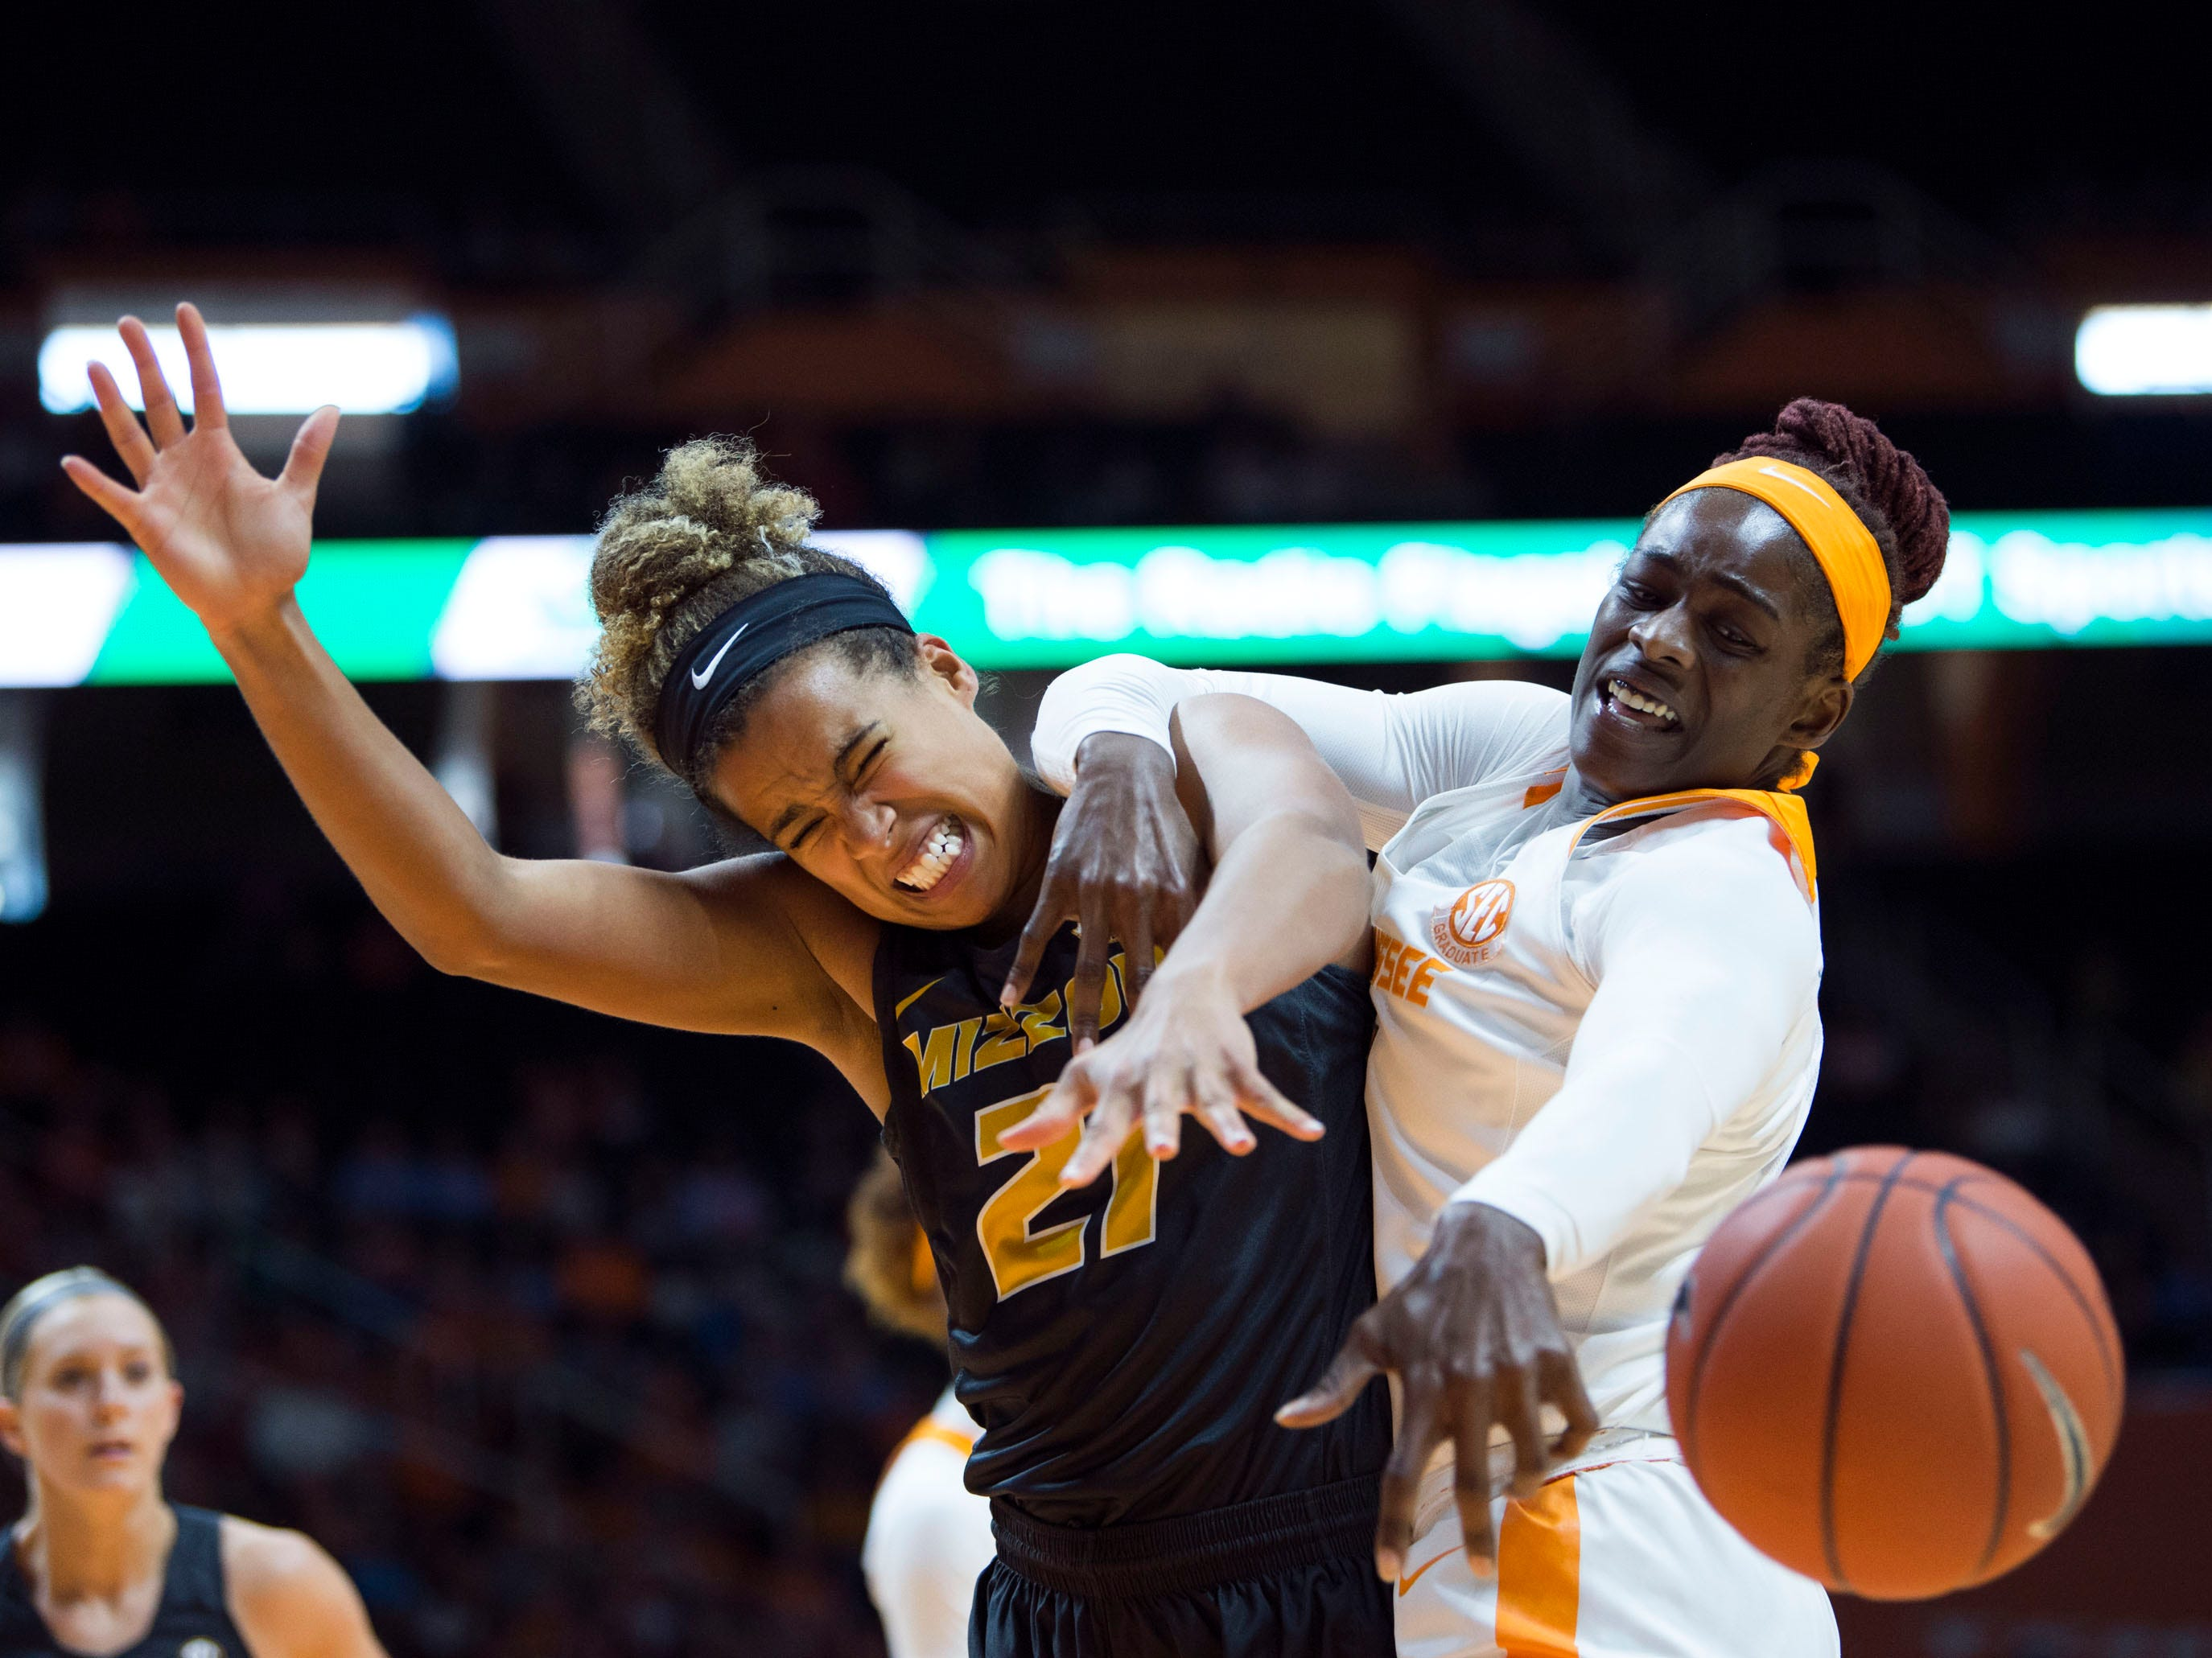 Tennessee's Cheridene Green (15) and Missouri's Cierra Porter (21) batte for the rebound on Sunday, January 6, 2019.